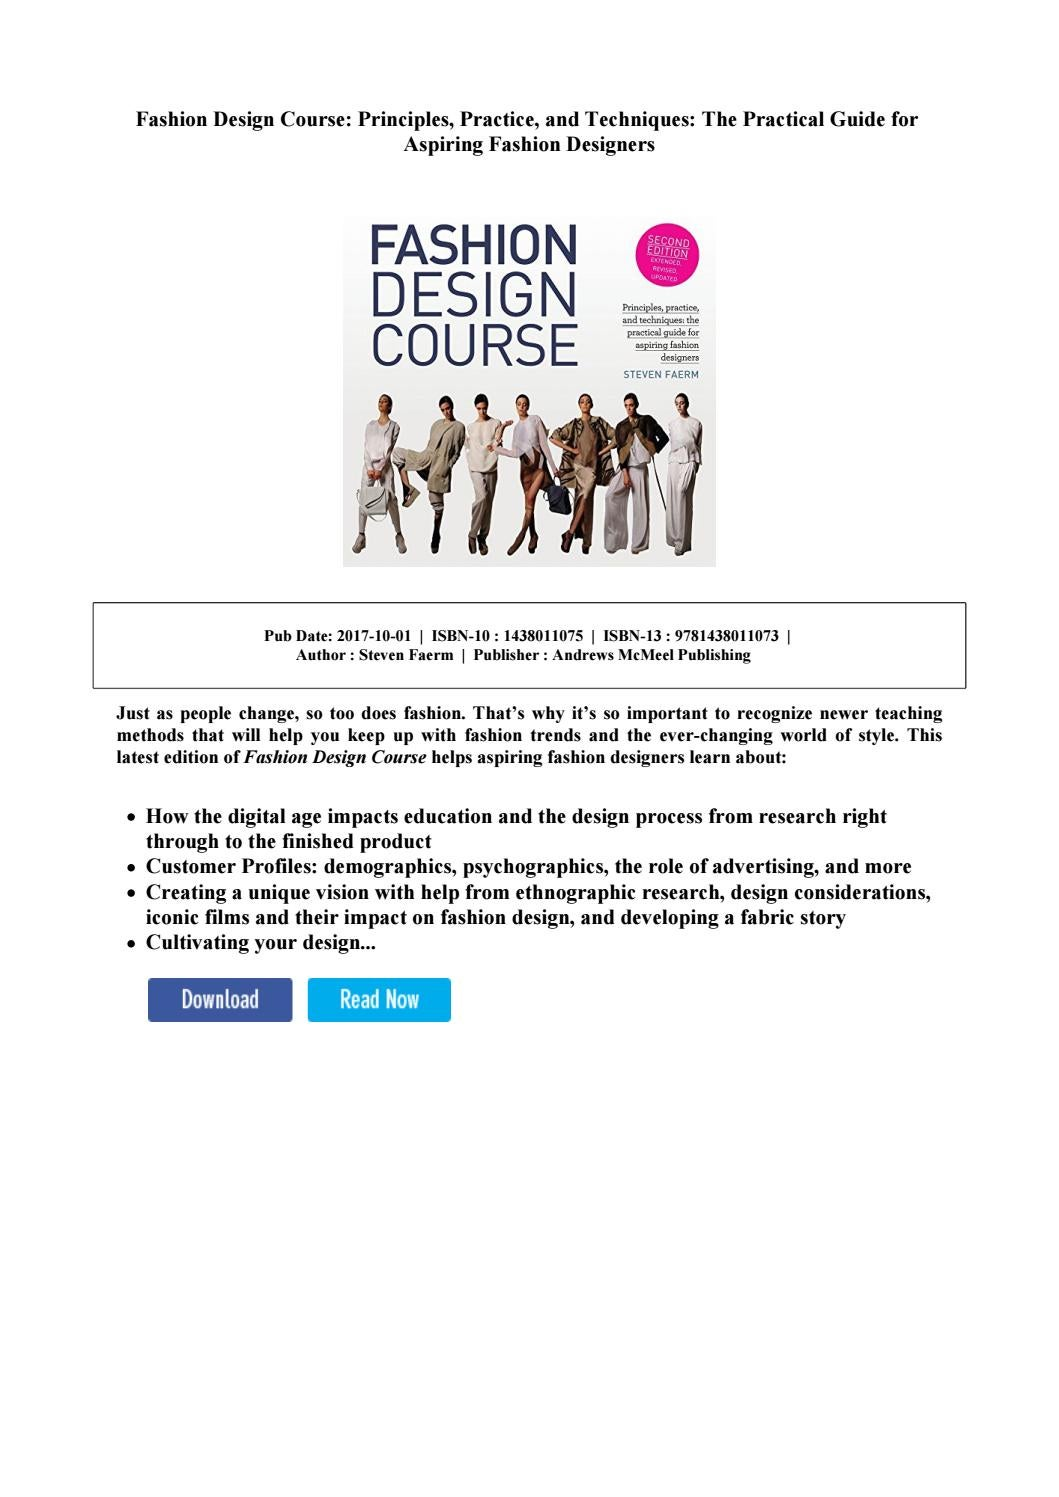 Fashion Design Course Principles Practice And Techniques The Practical Guide For Aspiring Fashion By Theohipacio Issuu